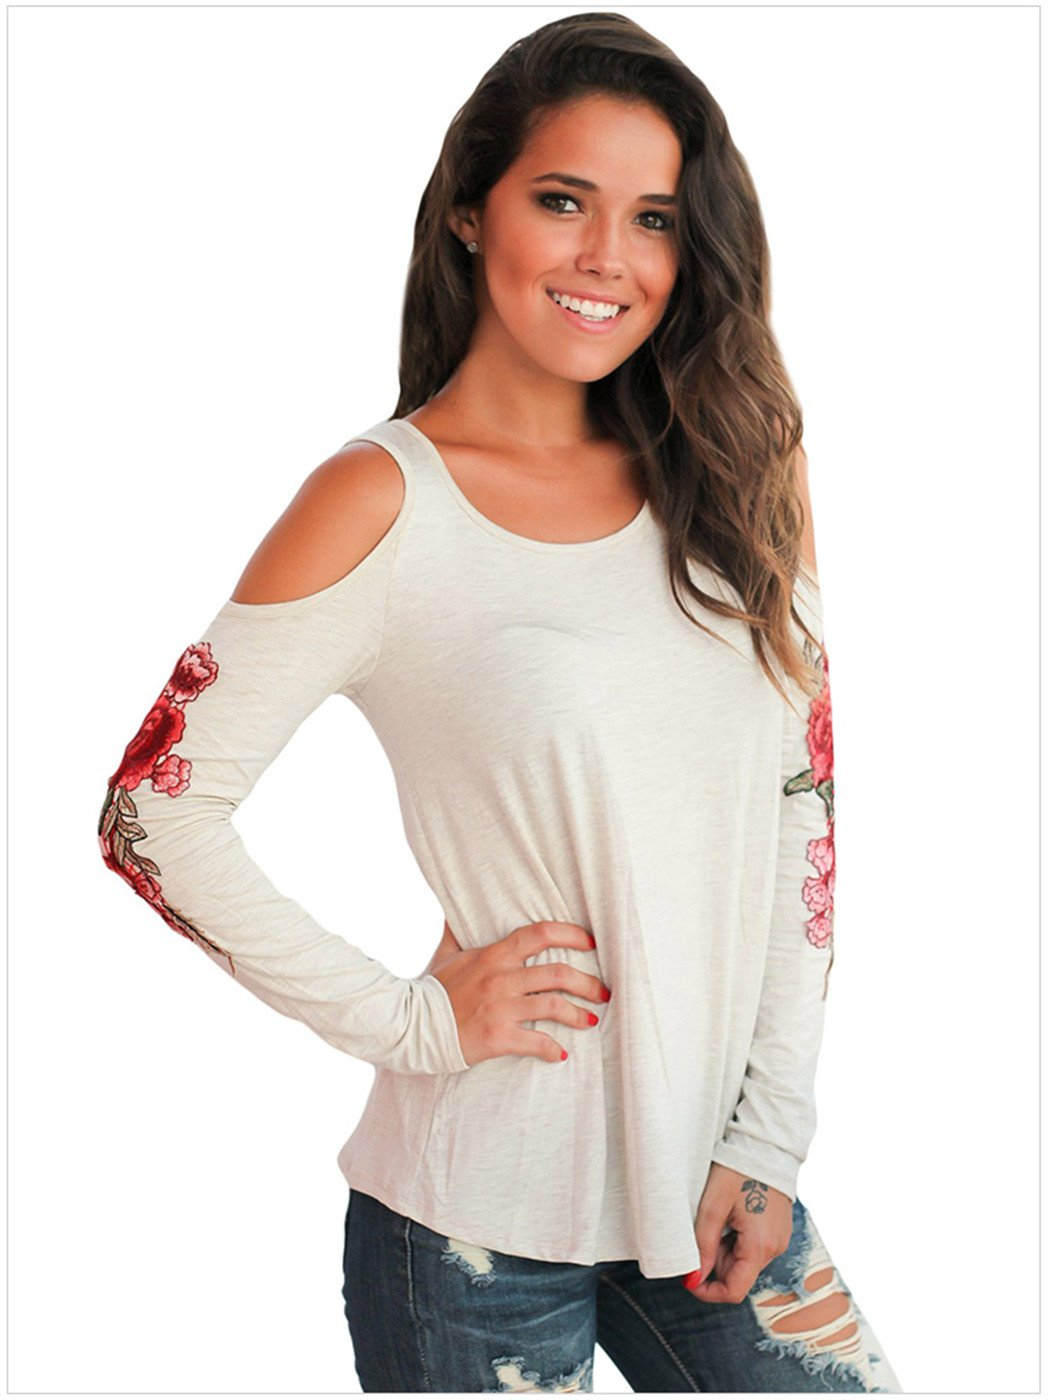 Sexy Long Sleeve Floral Embroidered Embroidery Cold Open Shoulder Blouse Shirt T-Shirt Top at Amazon Womens Clothing store: